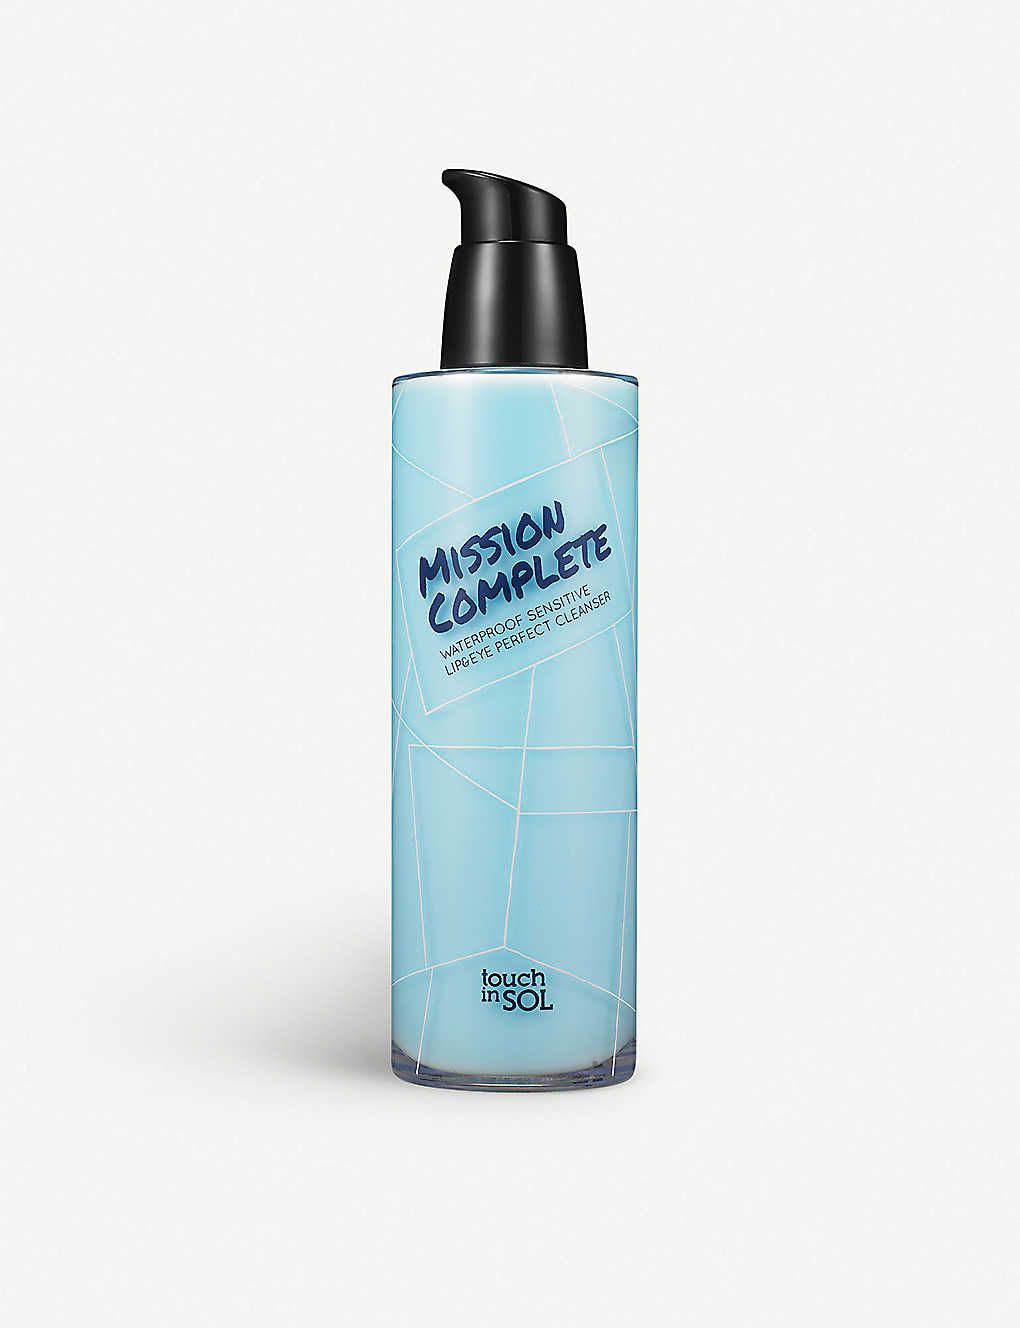 Best facial cleansing products 2020